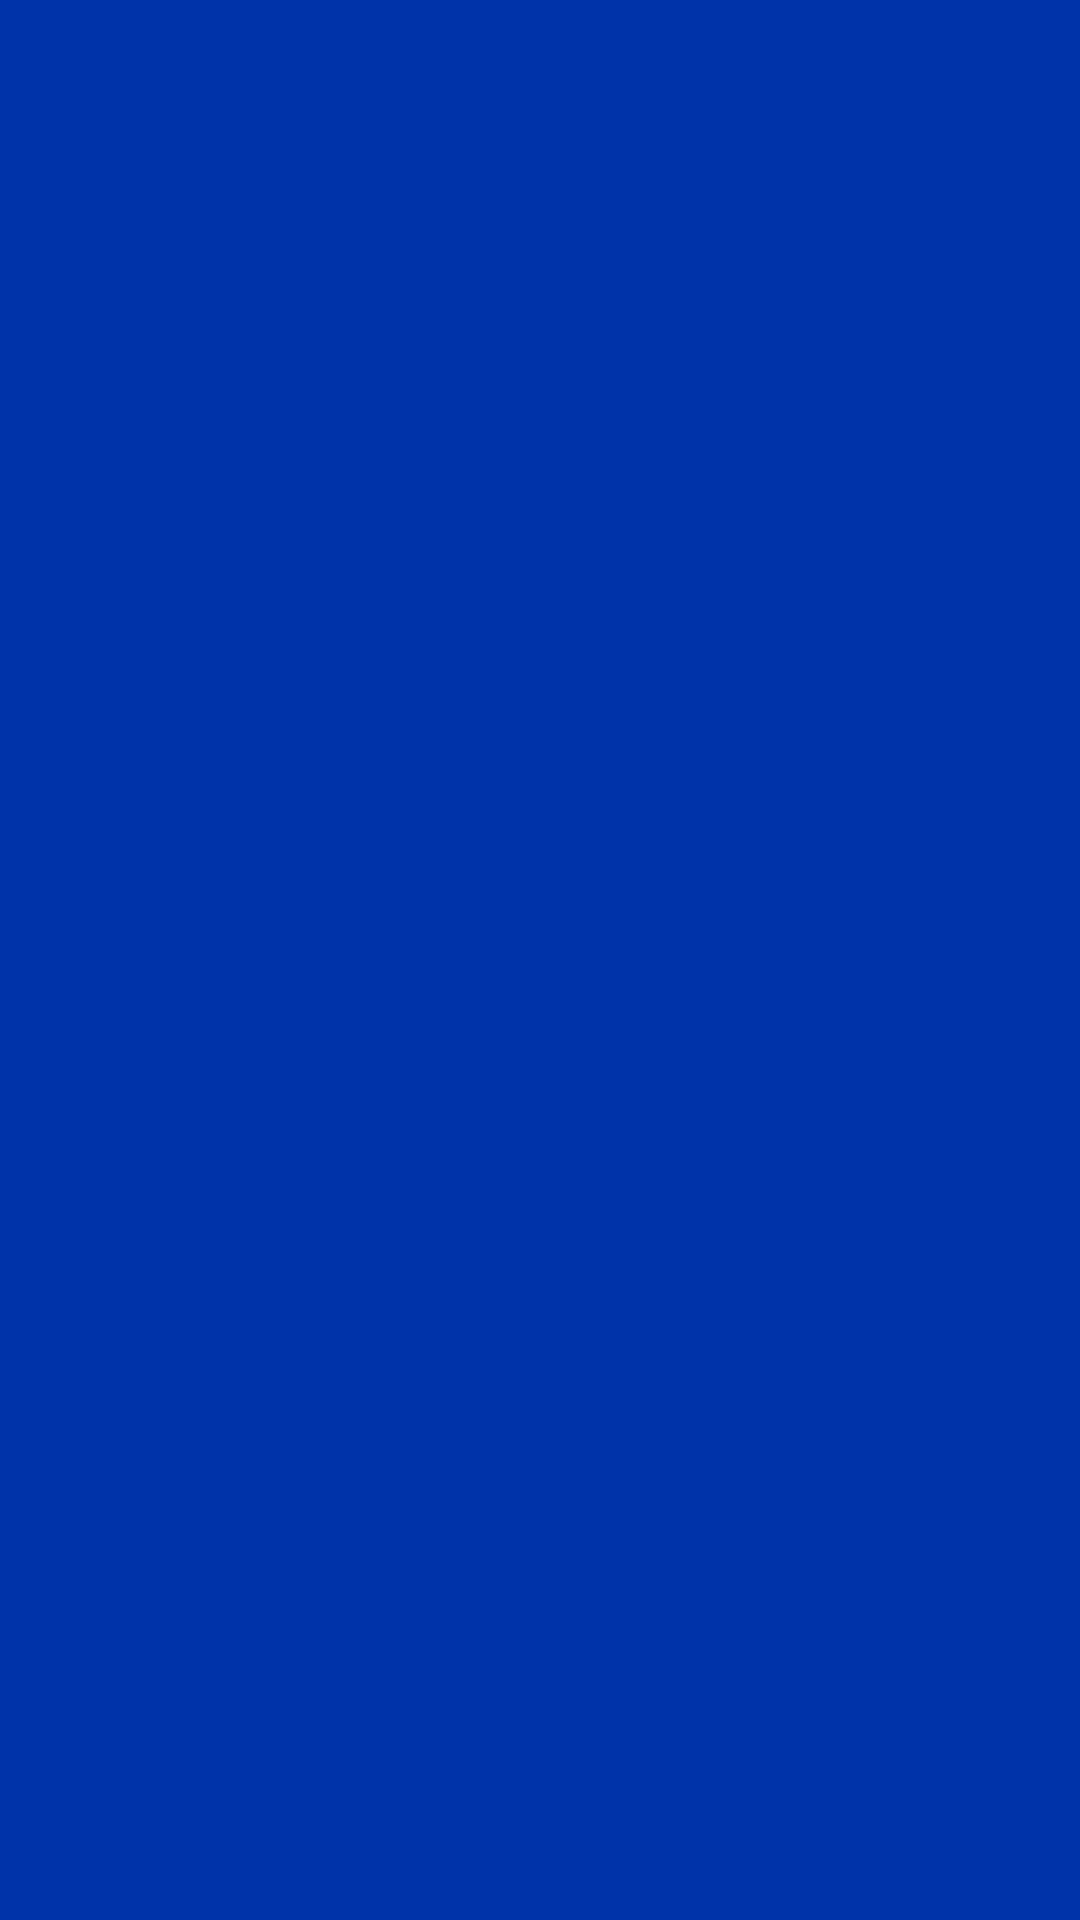 1080x1920 UA Blue Solid Color Background